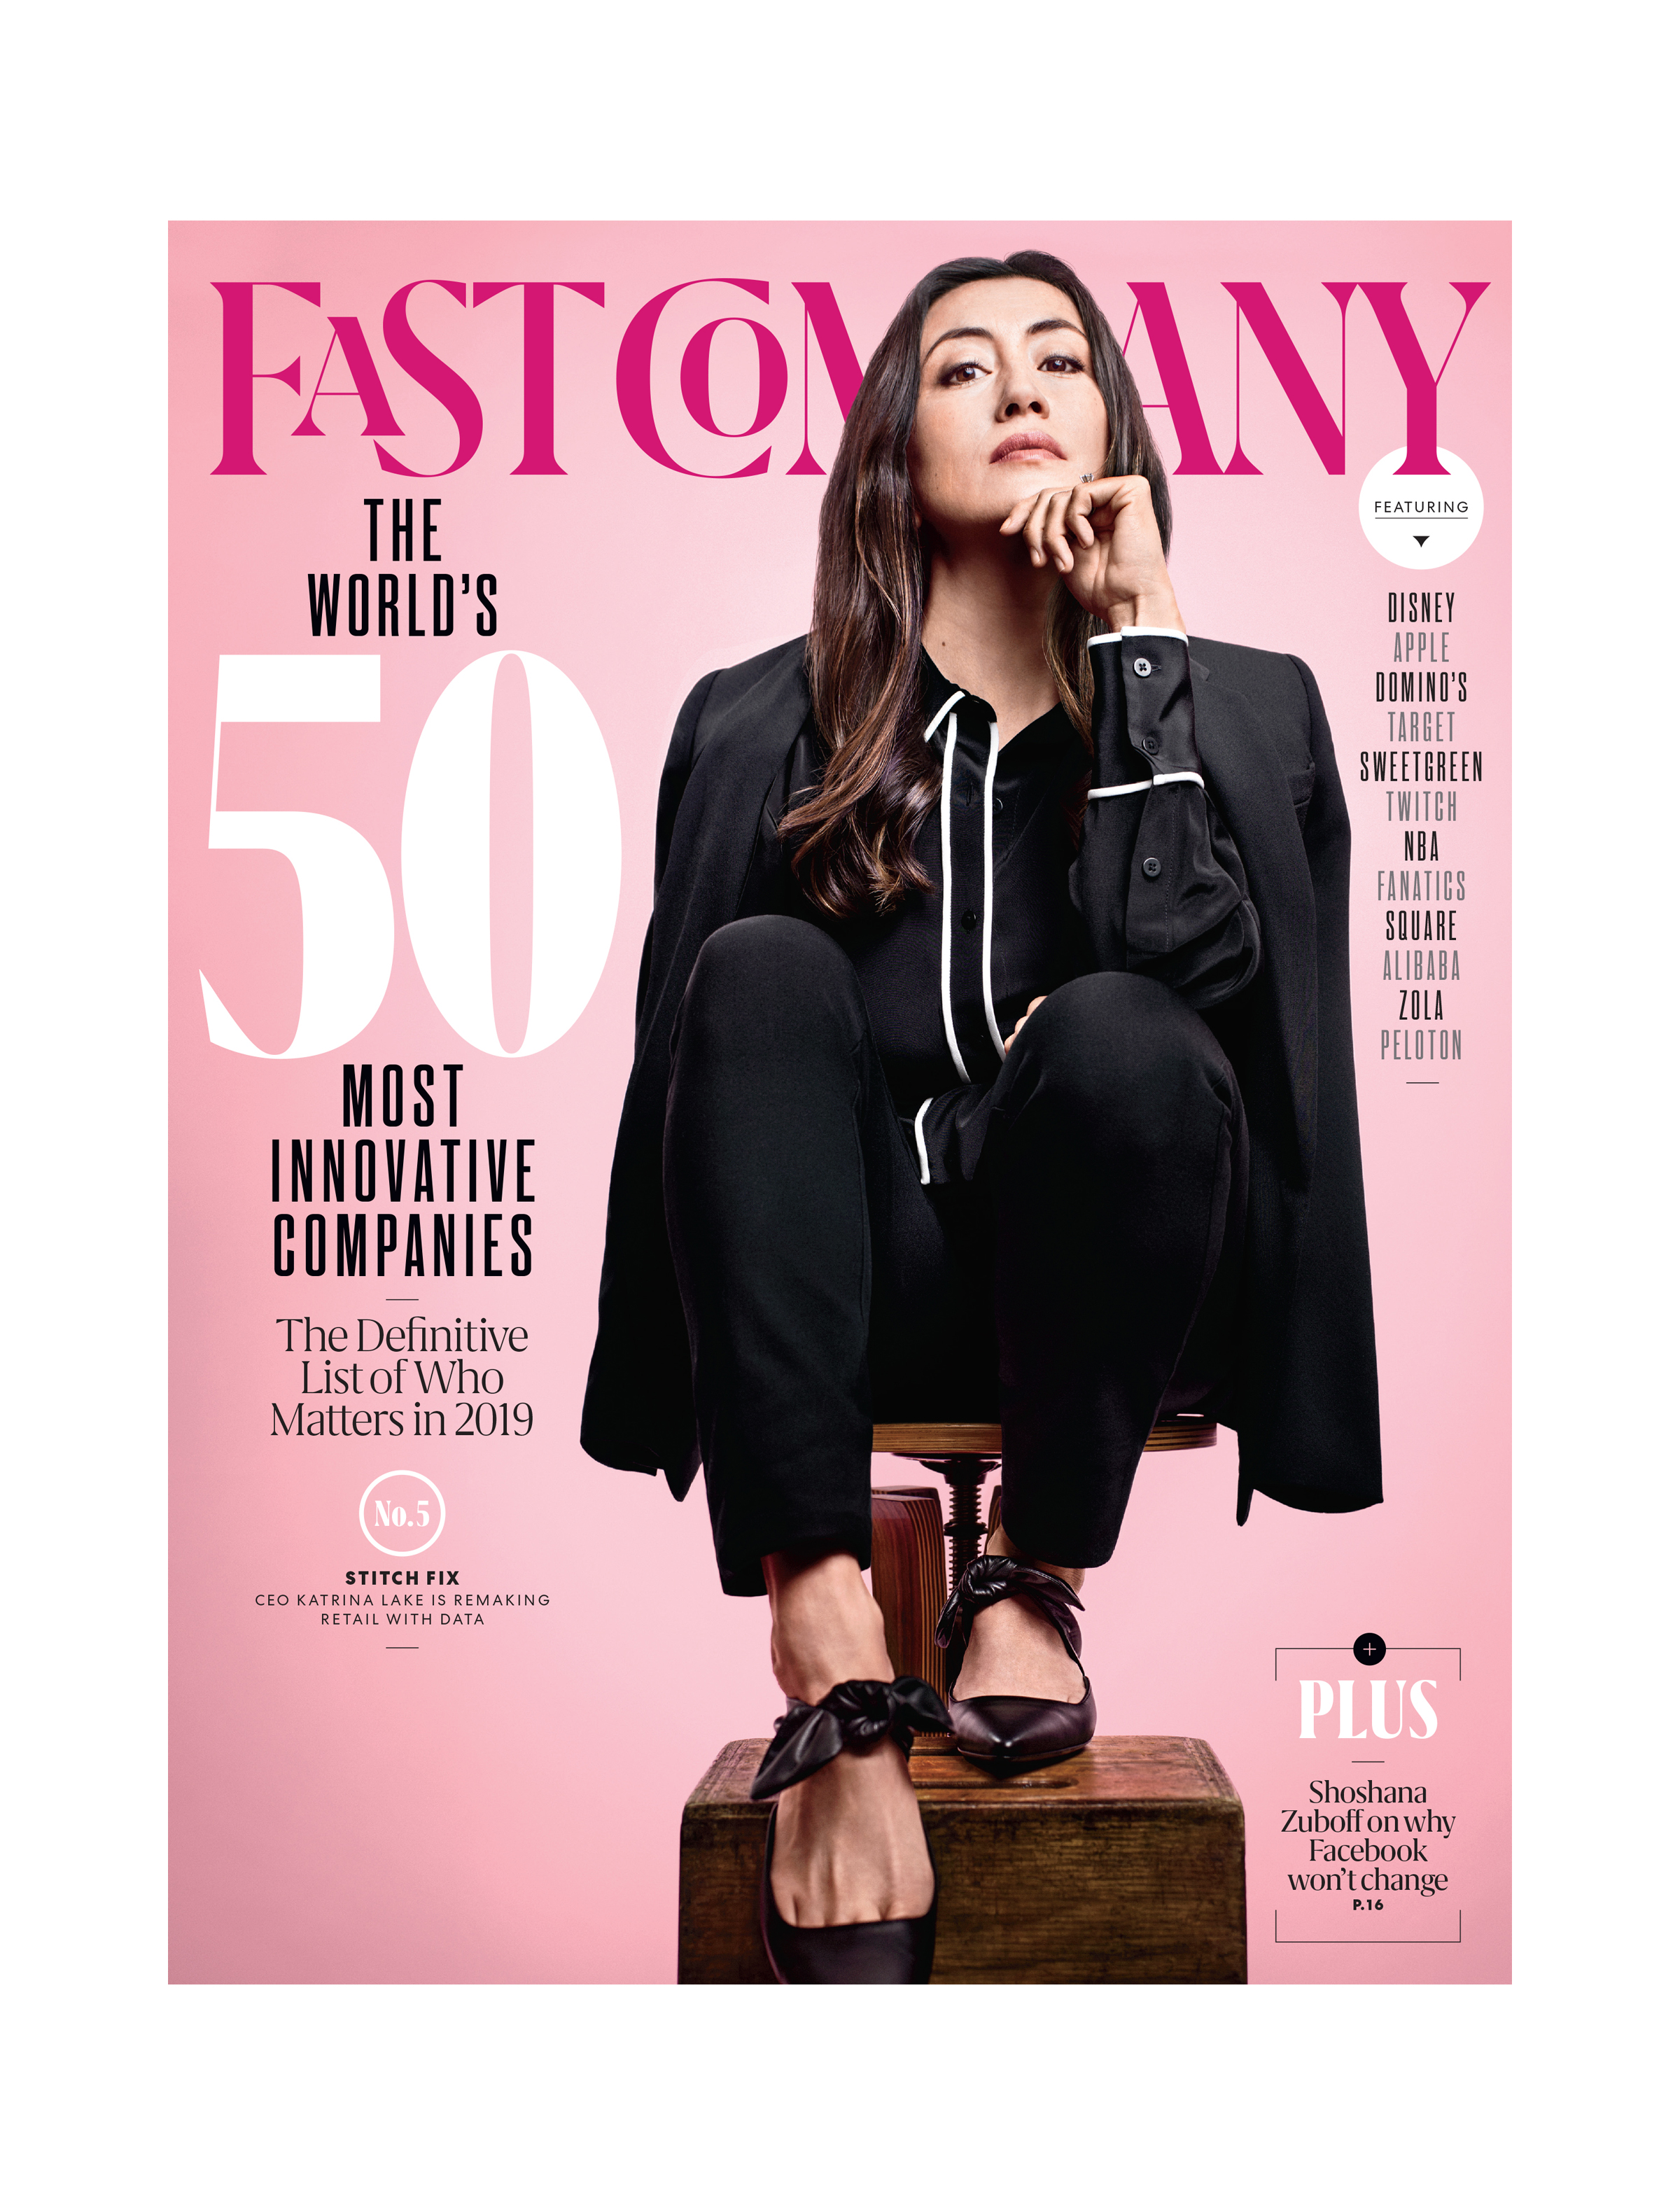 2efac0f8e8 Stitch Fix CEO Katrina Lake is the Cover Story in Fast Company s 2019  World s Most Innovative Companies Issue